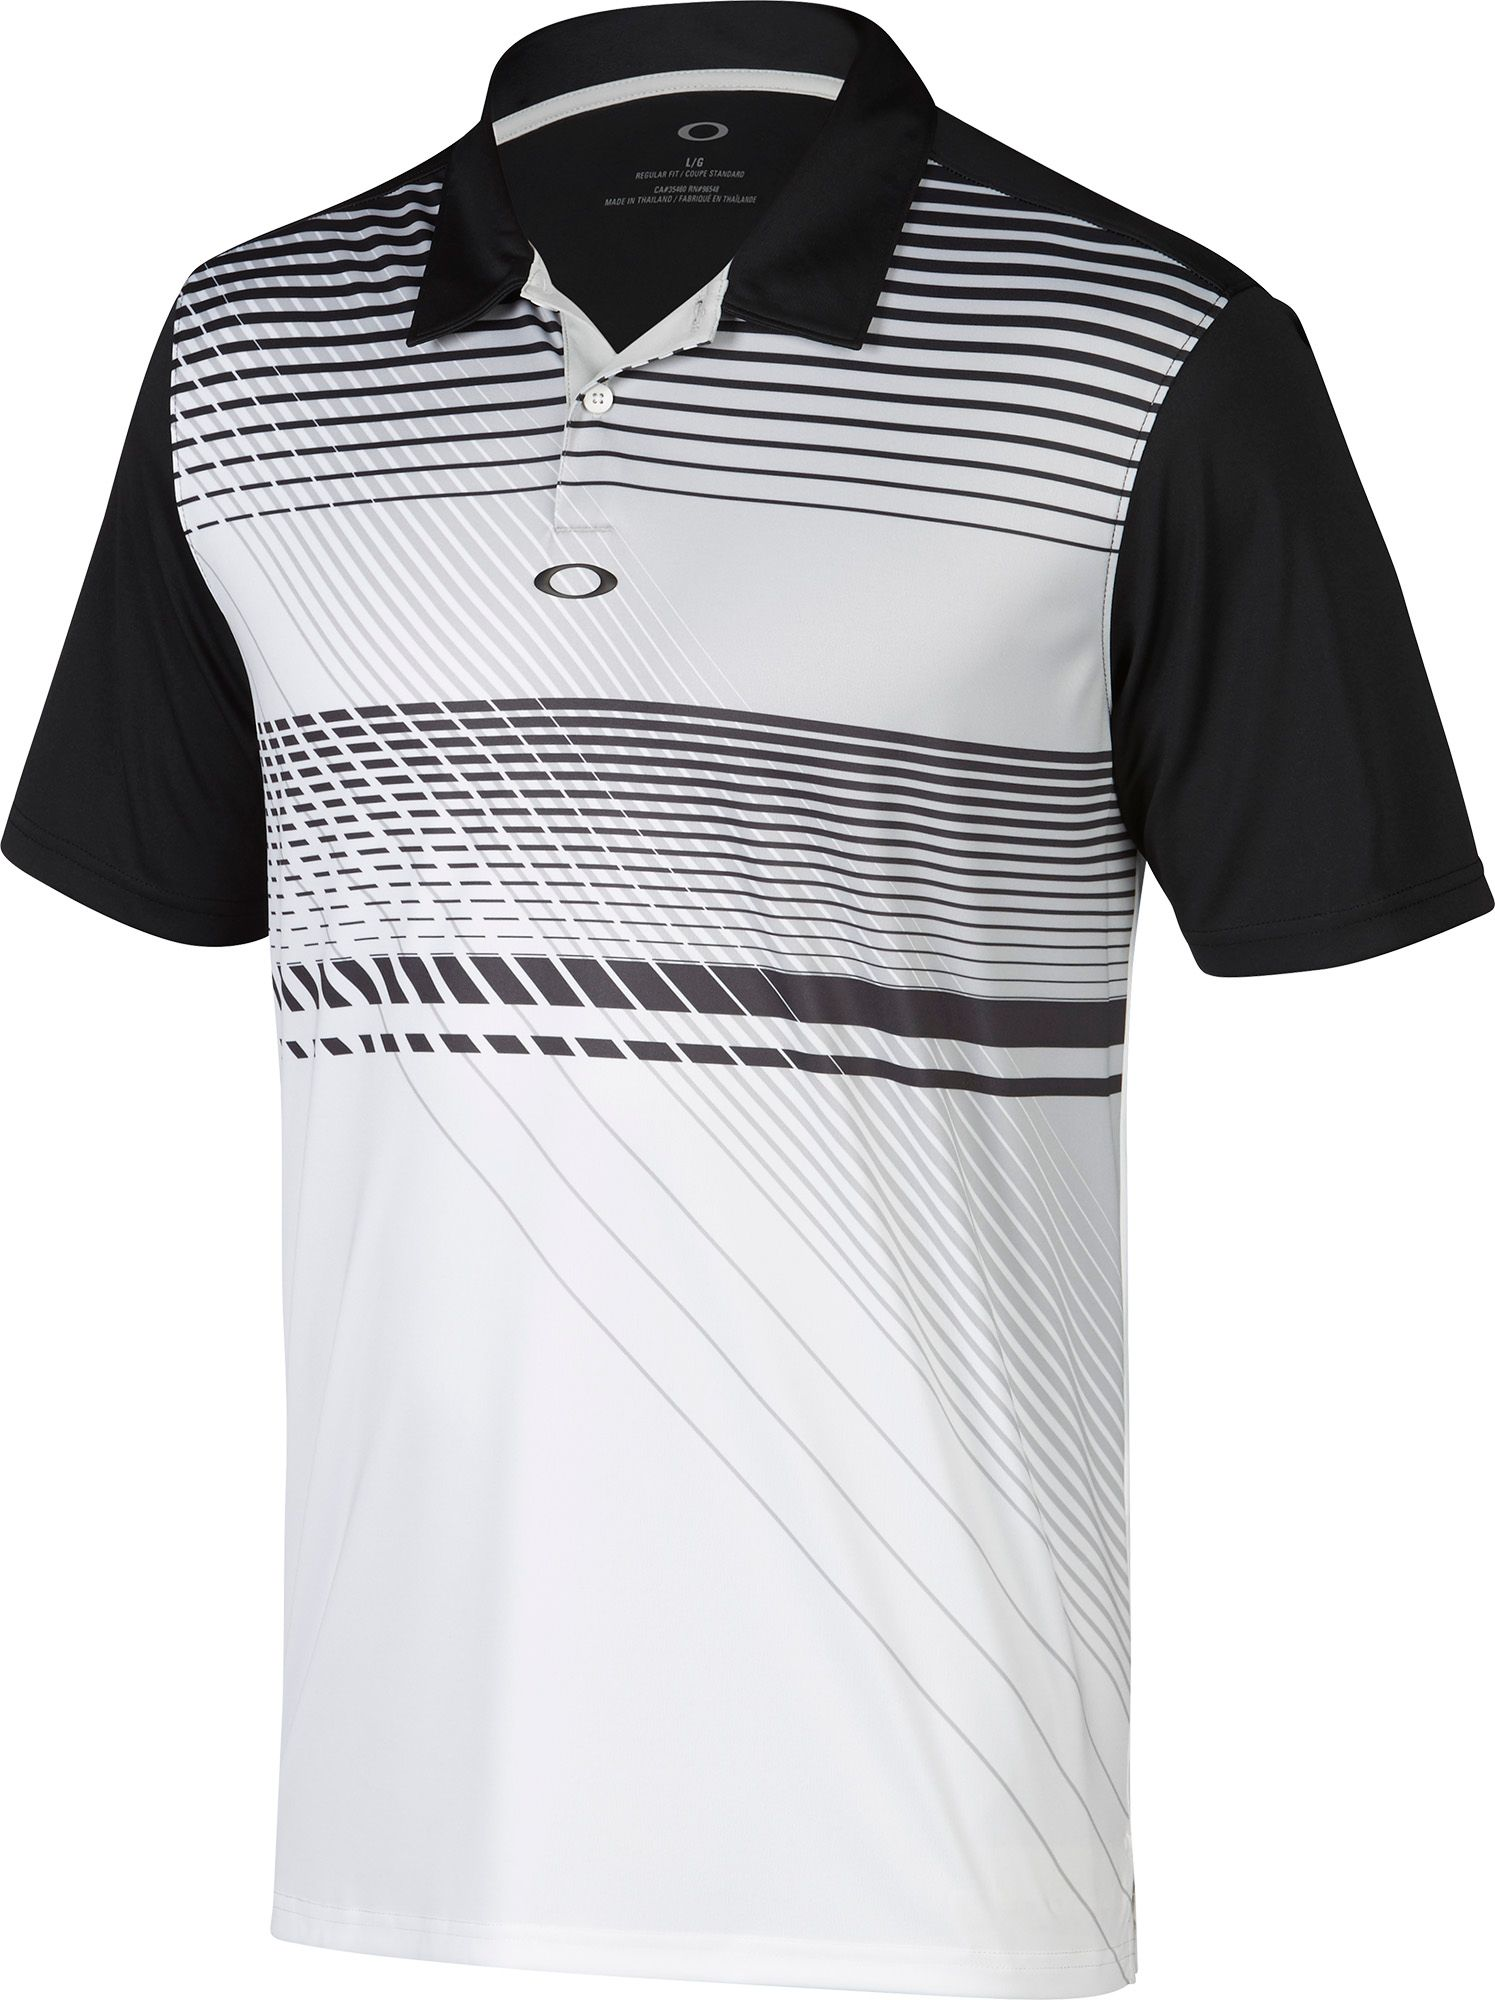 Oakley mens superior golf polo dicks sporting goods noimagefound nvjuhfo Images